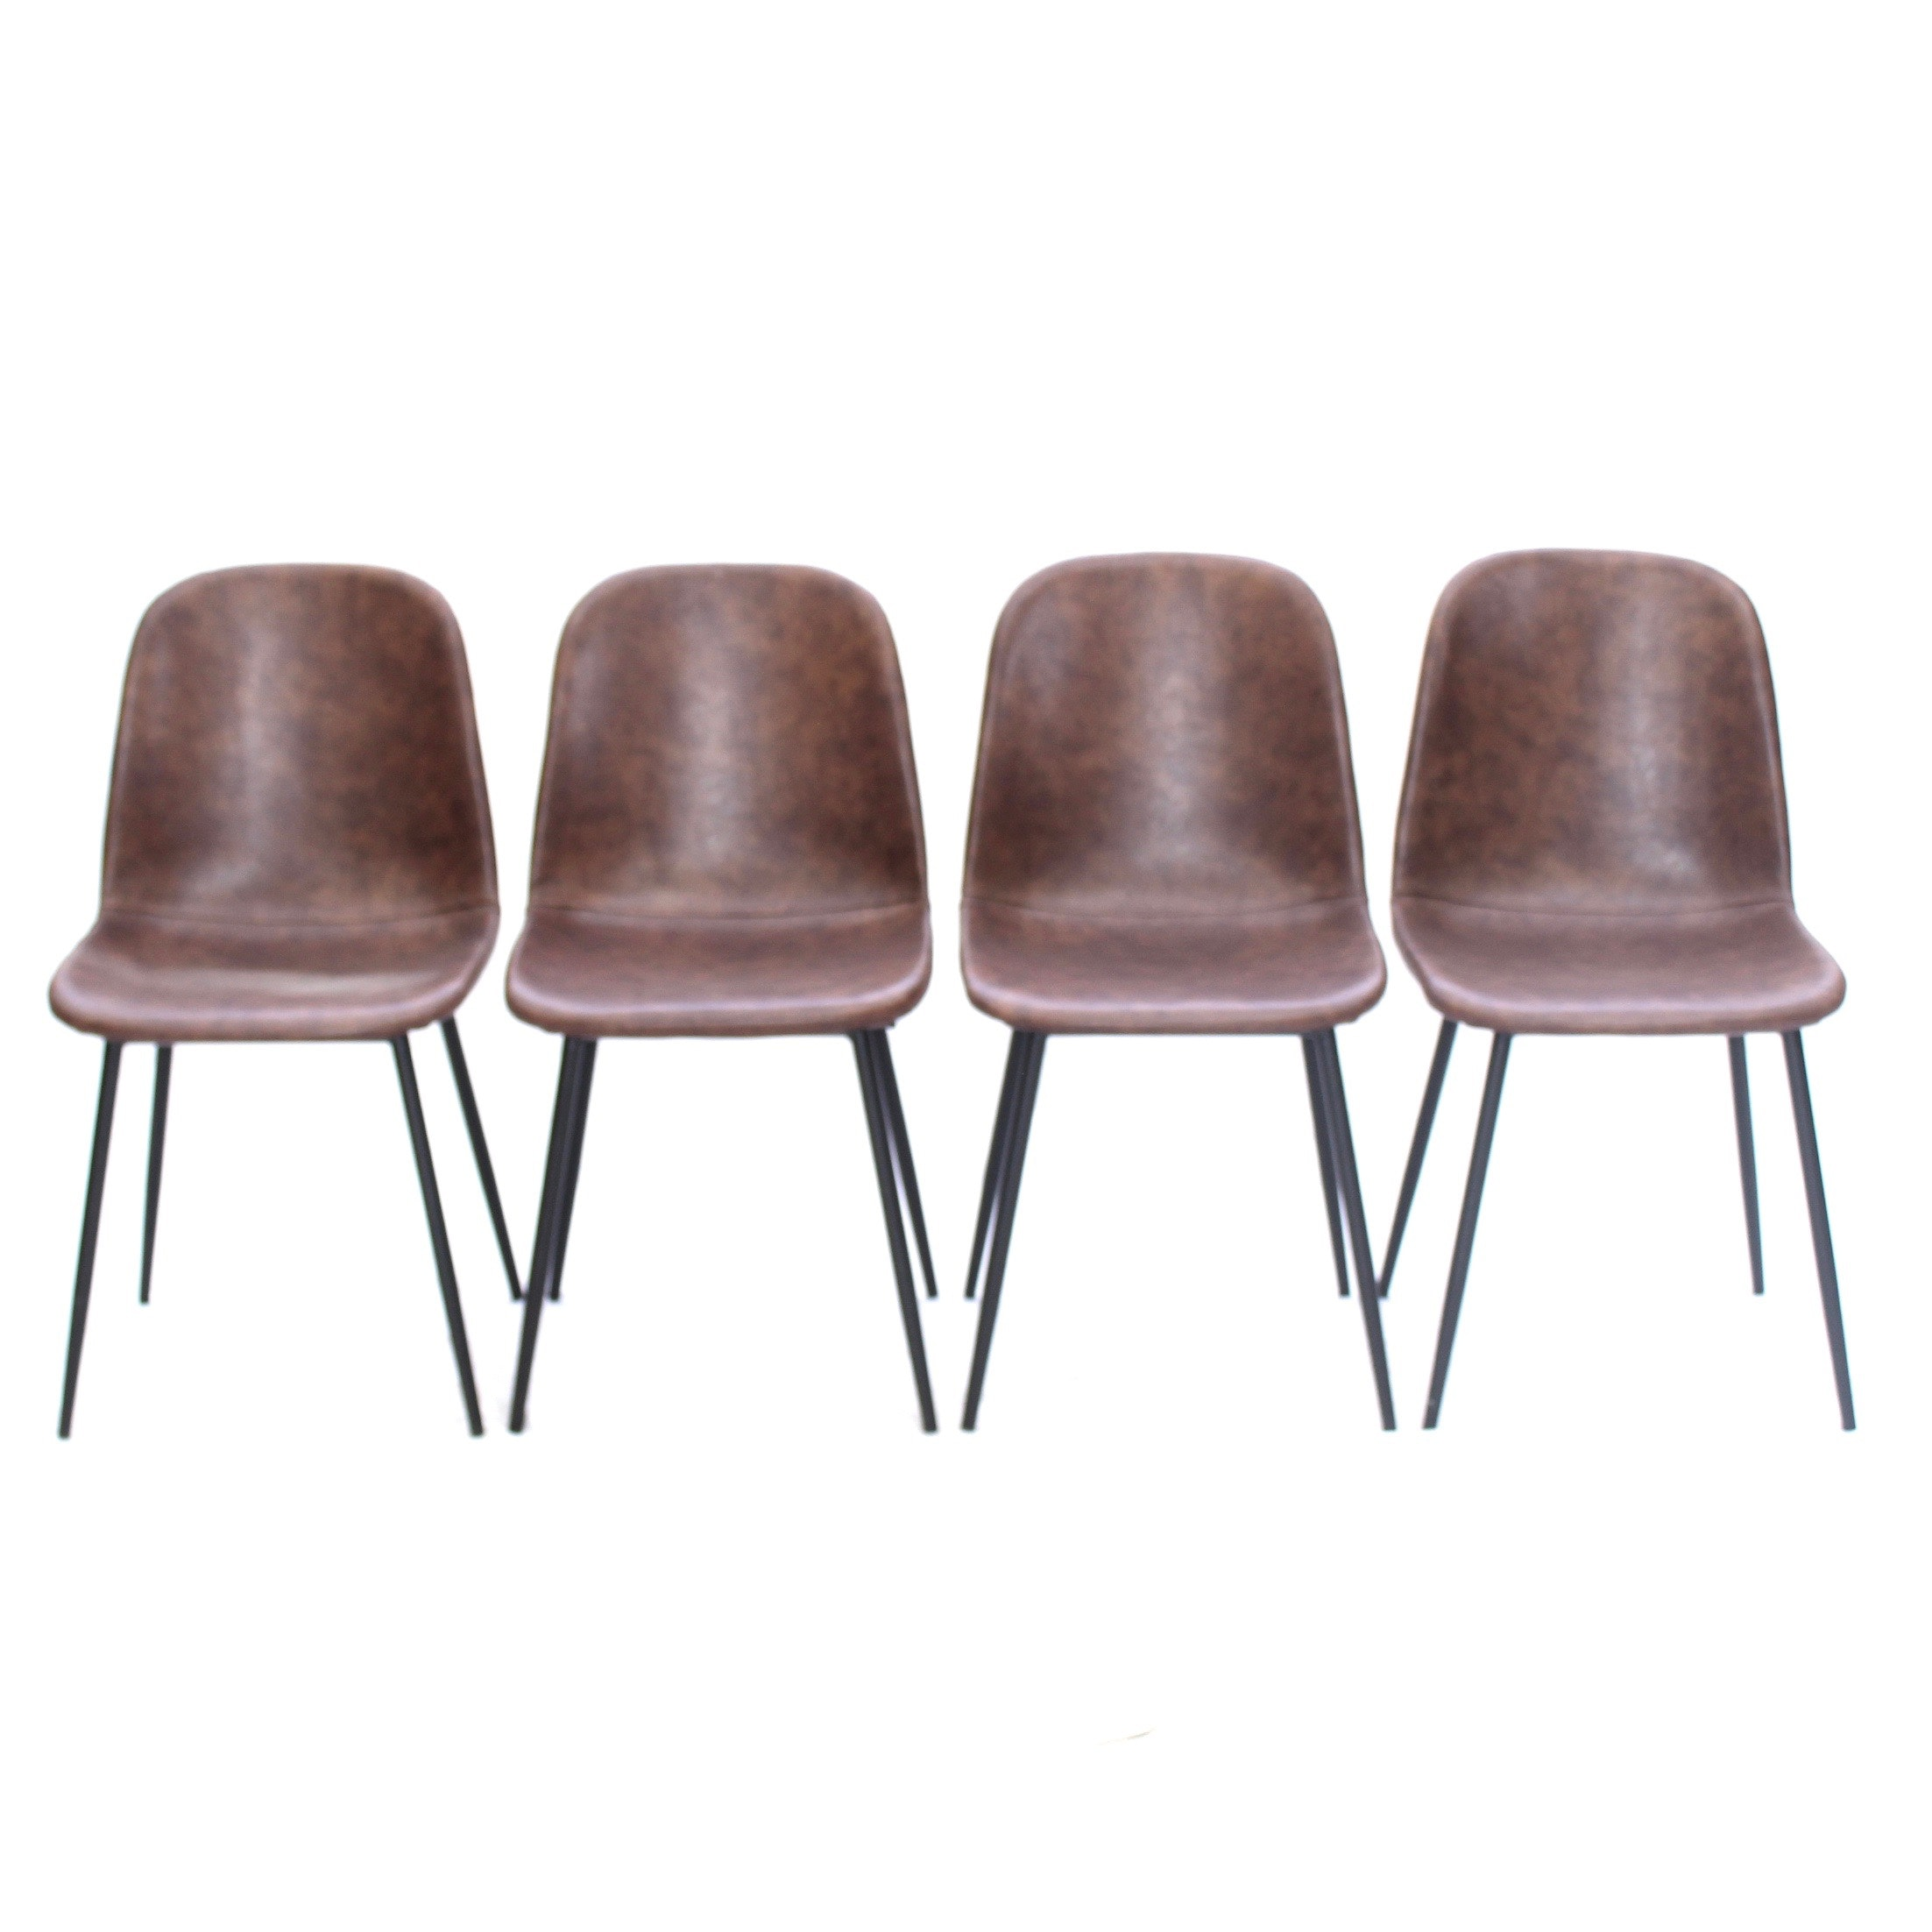 Four Brown Leatherette Dining Chairs, Contemporary